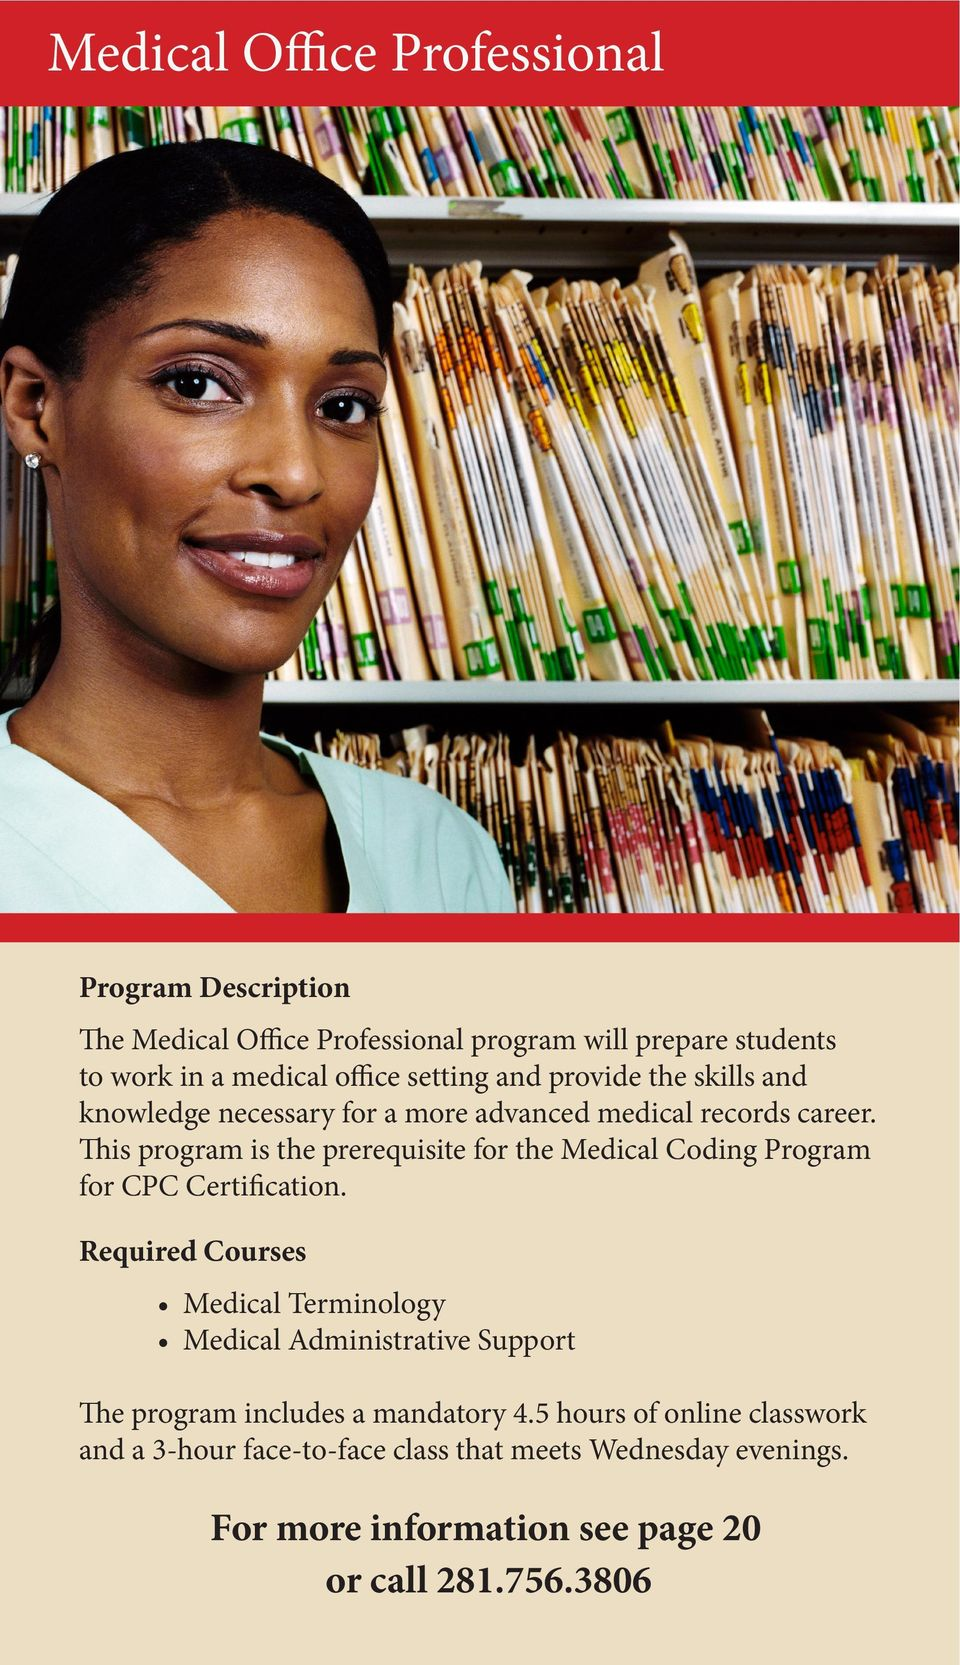 This program is the prerequisite for the Medical Coding Program for CPC Certification.